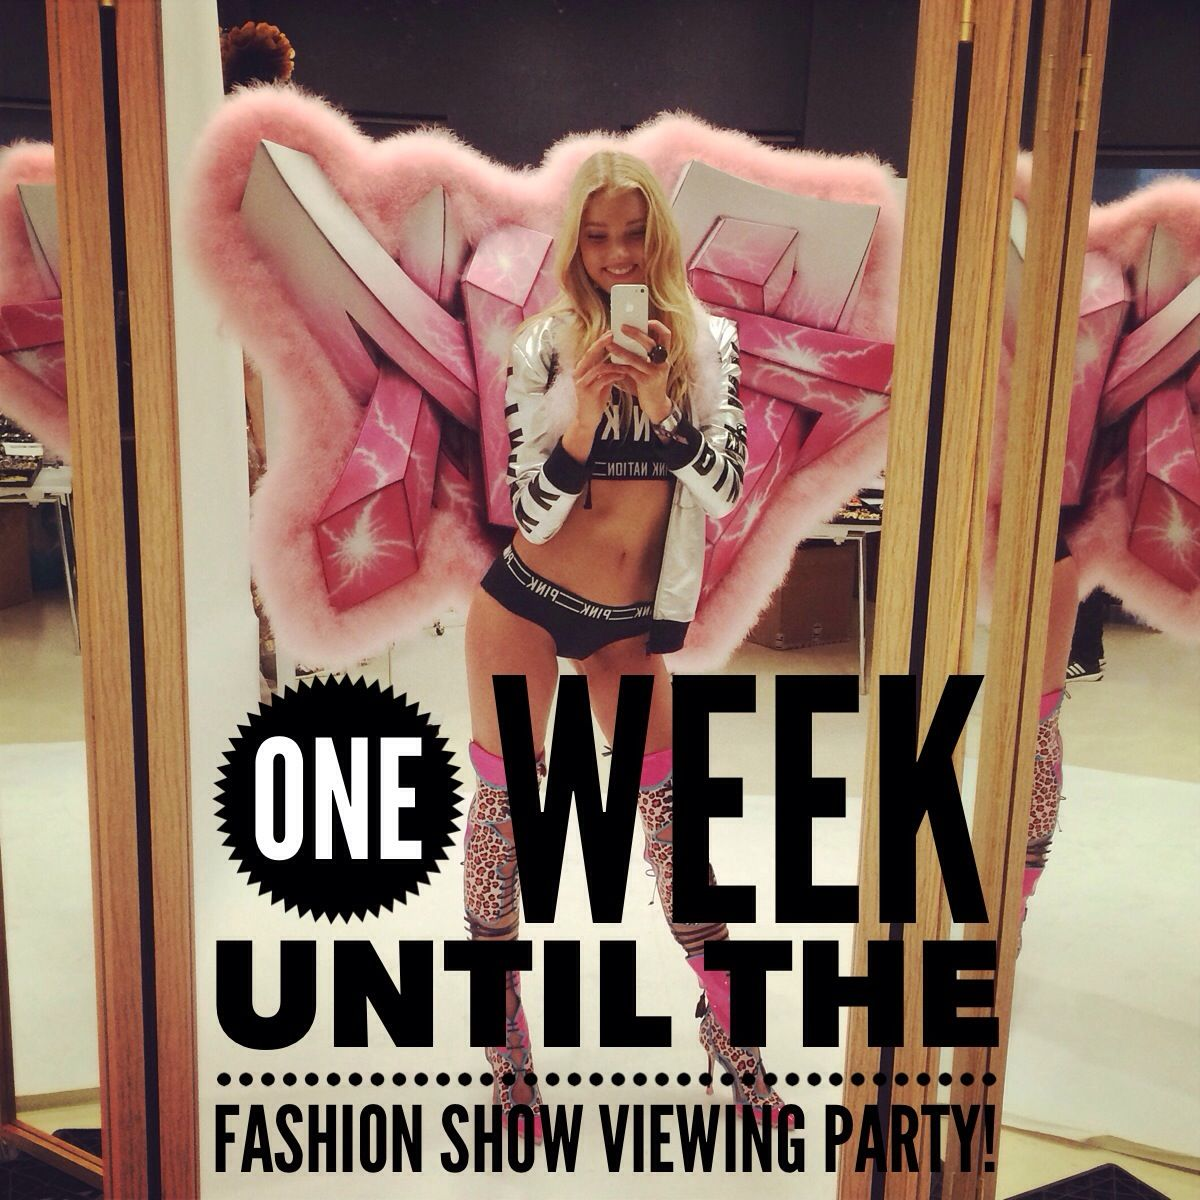 The Fashion Show Viewing Party is only one week away! RSVP